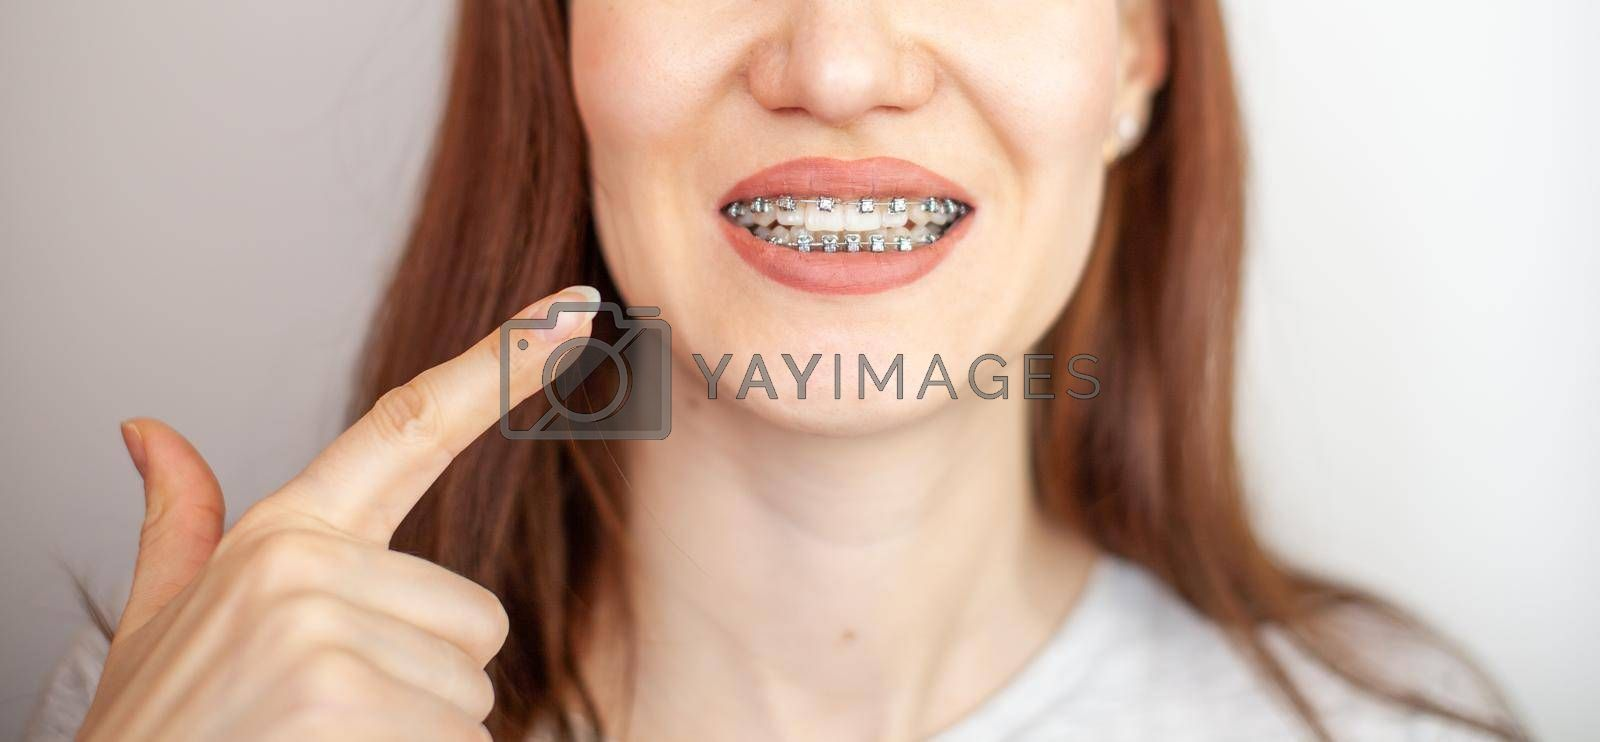 The girl points her finger at the even and white teeth with braces. Straightening your teeth with braces. Dental care.